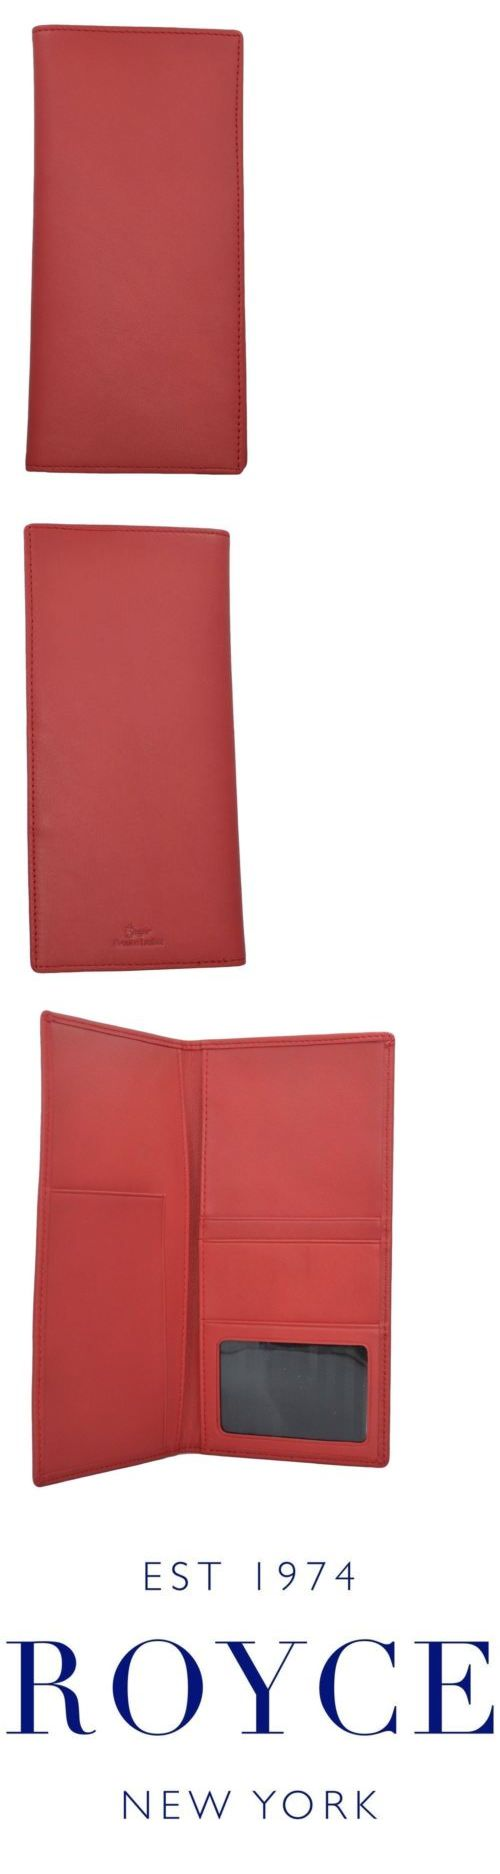 Money Belts and Wallets 98968: Royce Leather Rfid Blocking Passport Ticket Holder Red One Size -> BUY IT NOW ONLY: $42.05 on eBay!